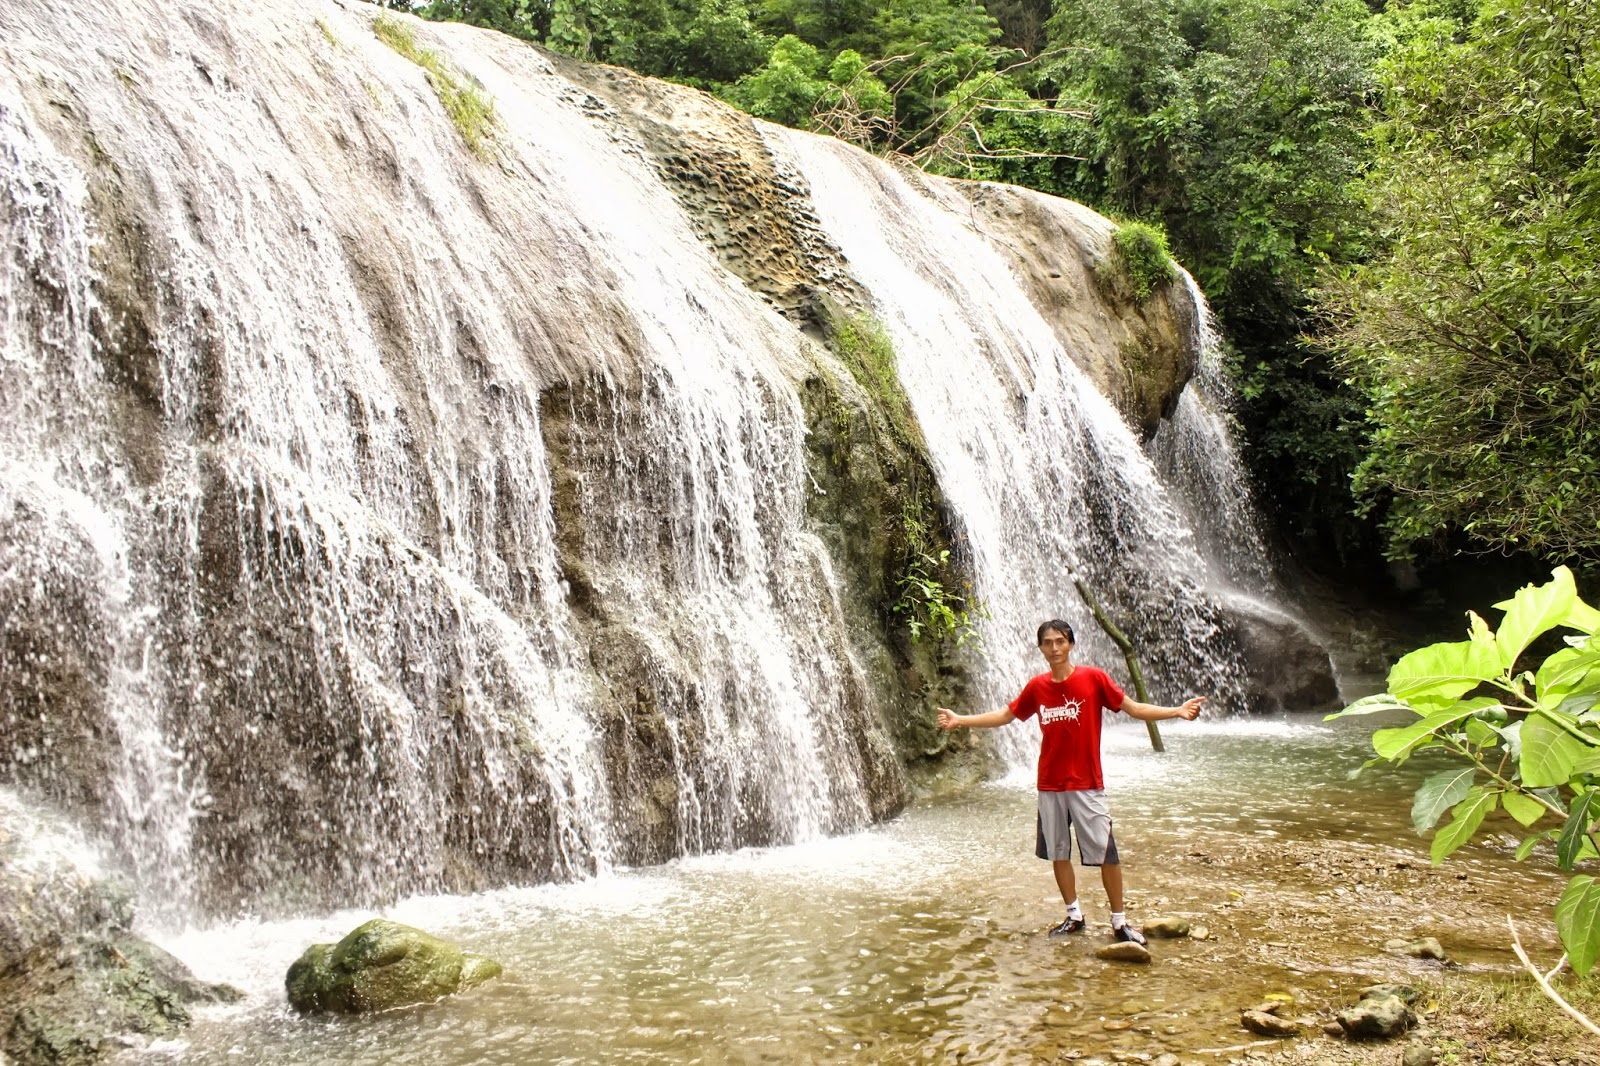 Mojokerto Indonesia  City new picture : Download image Air Terjun Mojokerto Jawa Timur Indonesia PC, Android ...